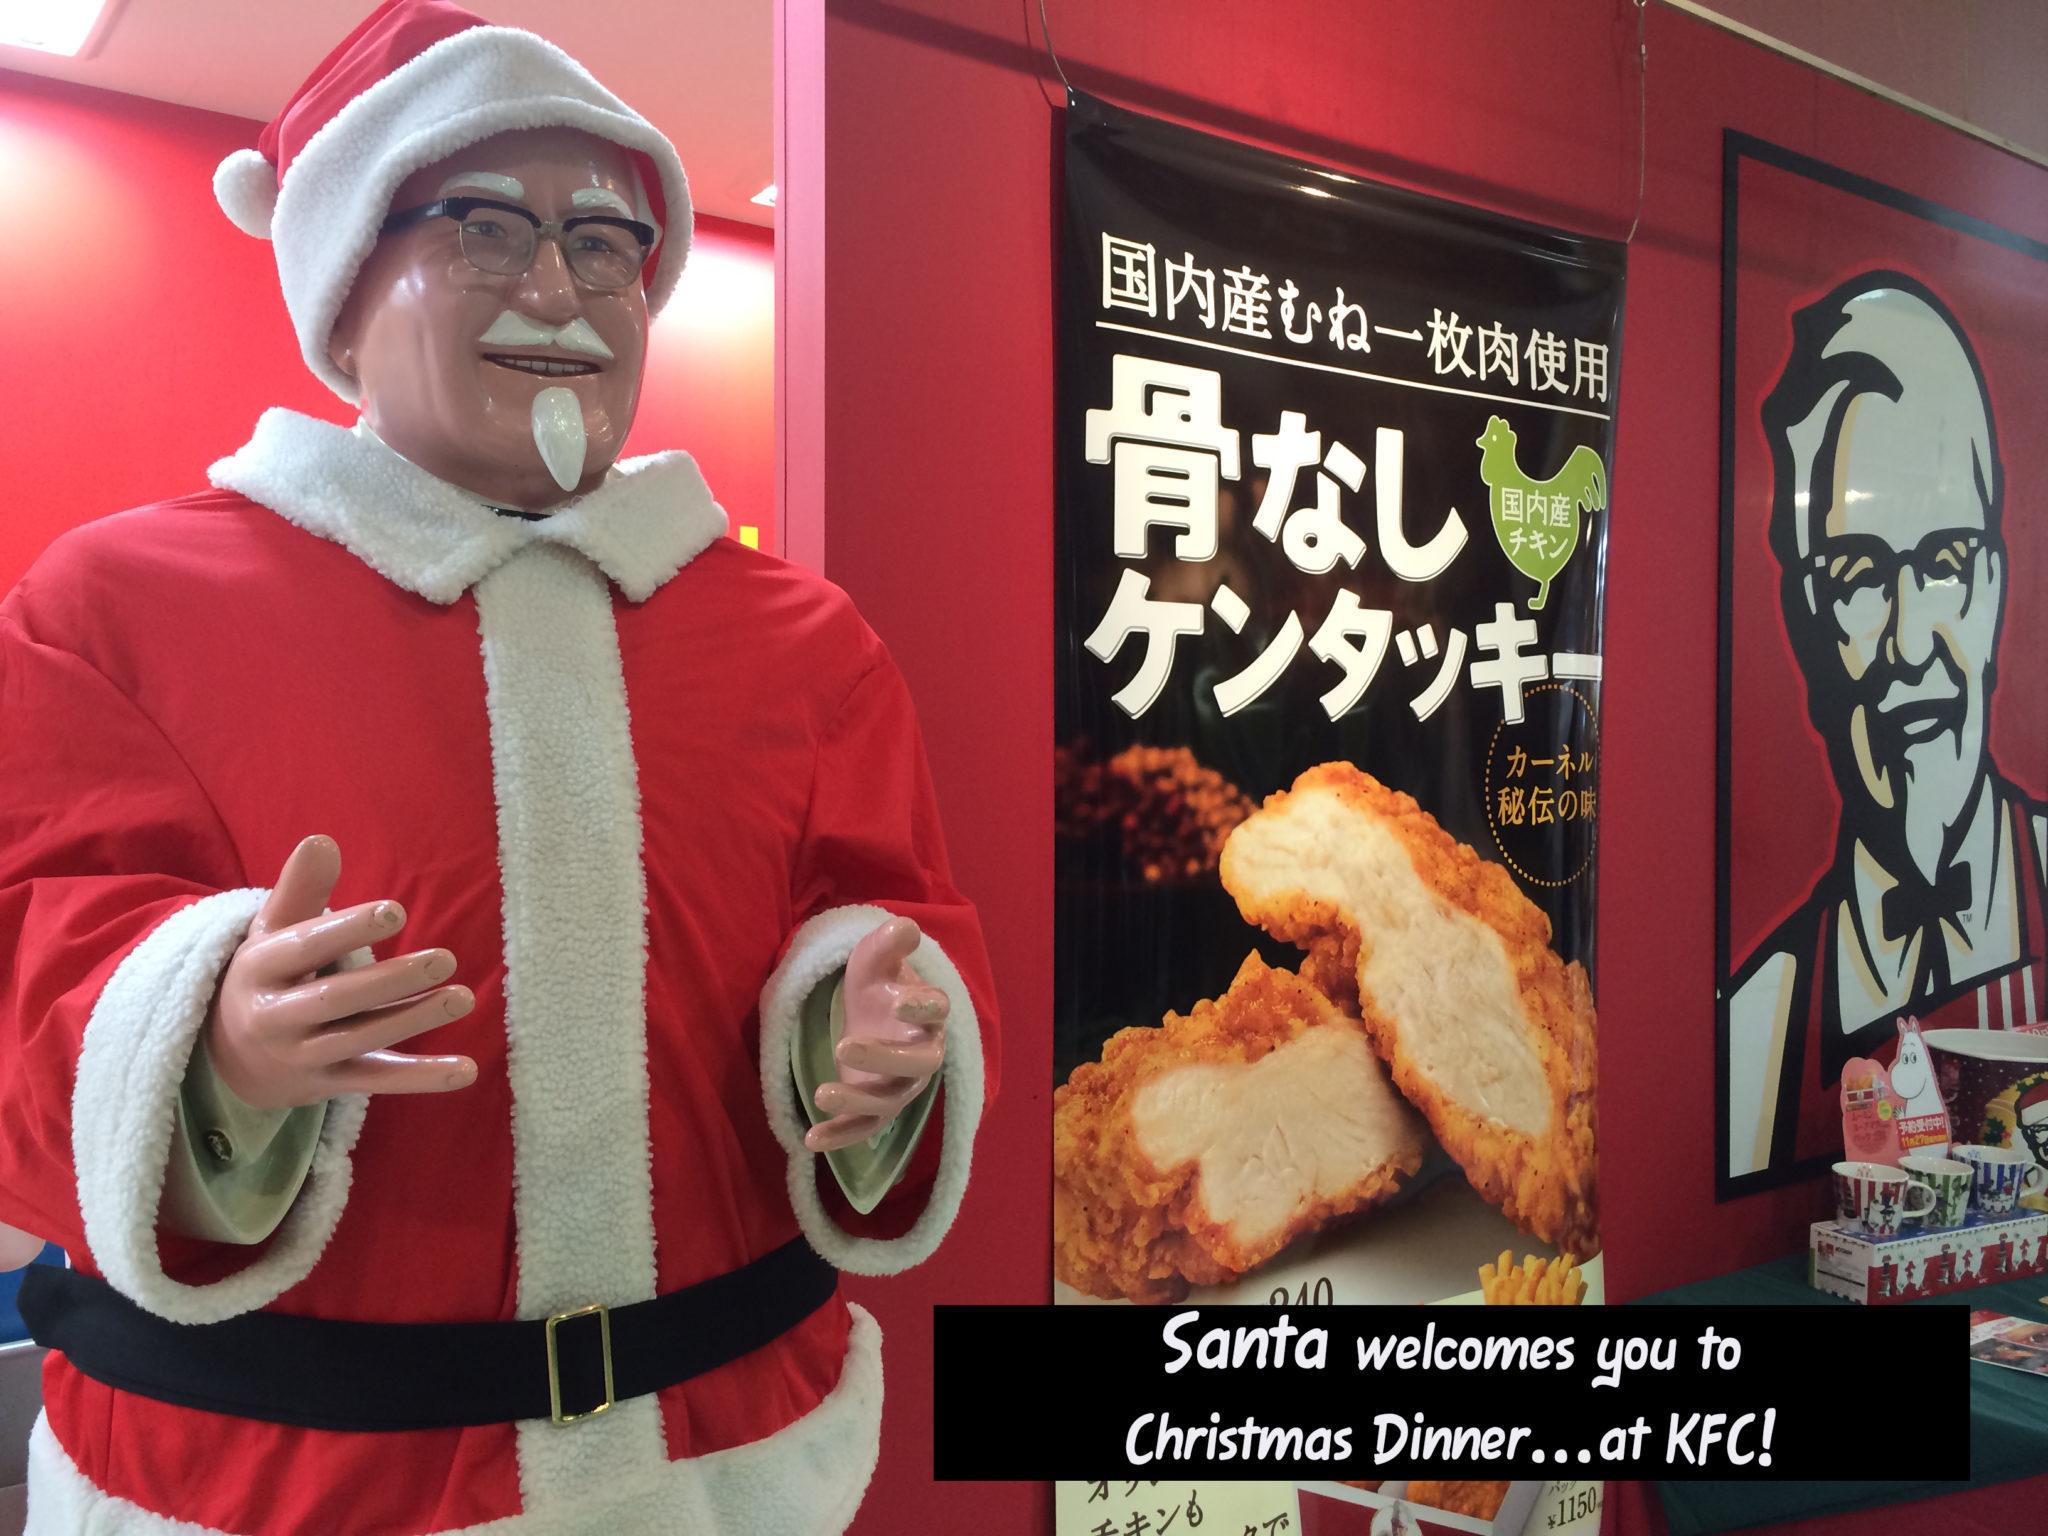 christmas in japan Over the last four decades, kfc has managed to make fried chicken synonymous with christmastime in japan here's how.